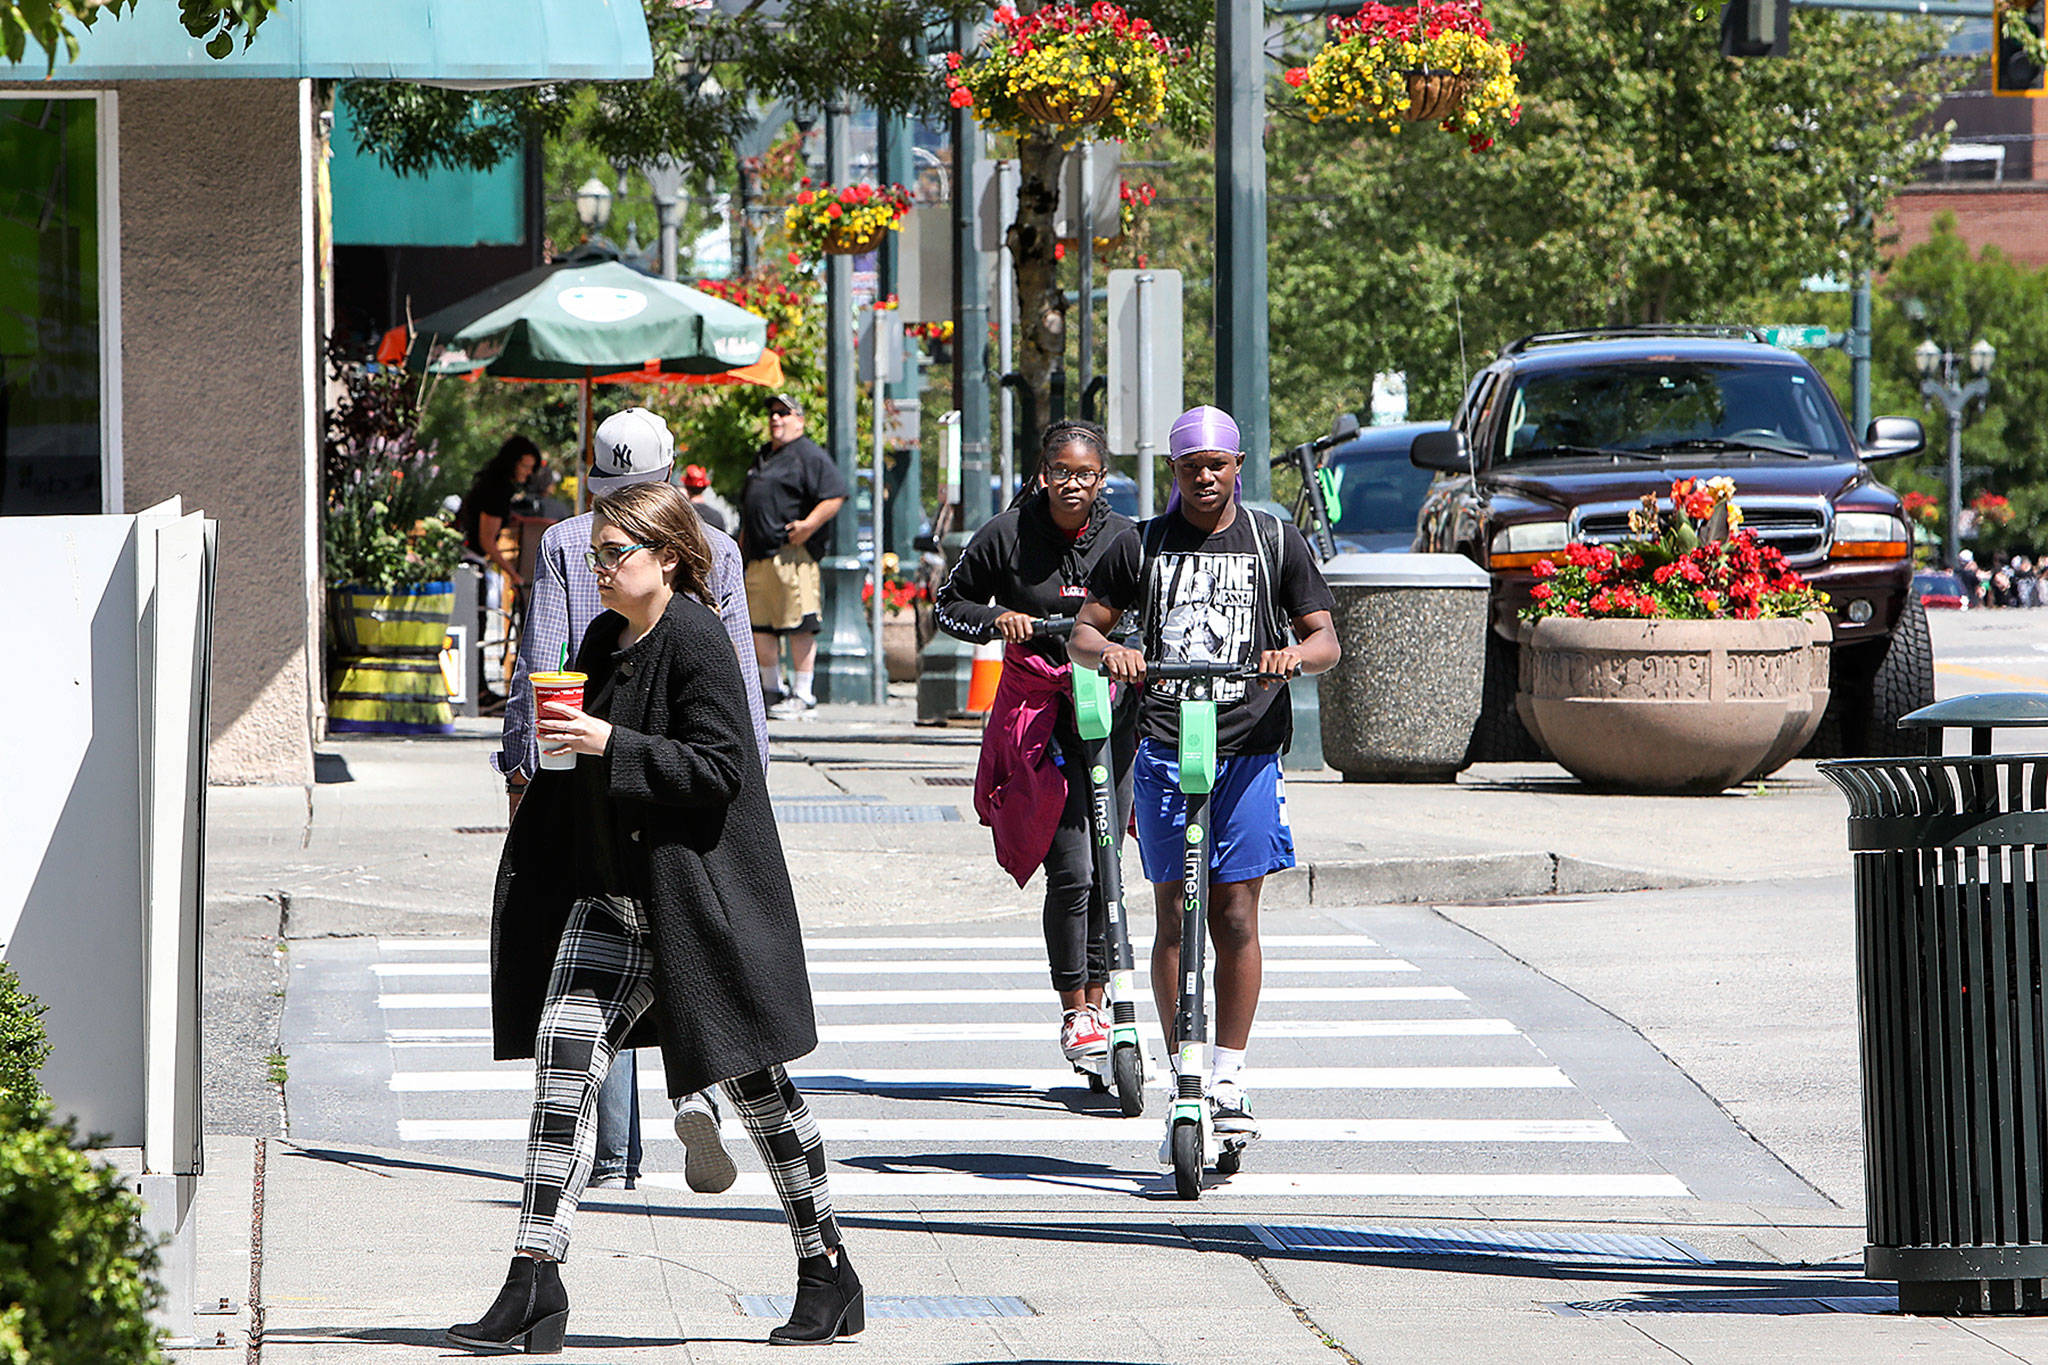 In May, 100 rentable e-scooters were placed in Everett and since have been whizzing down sidewalks in the city. (Lizz Giordano / The Herald)